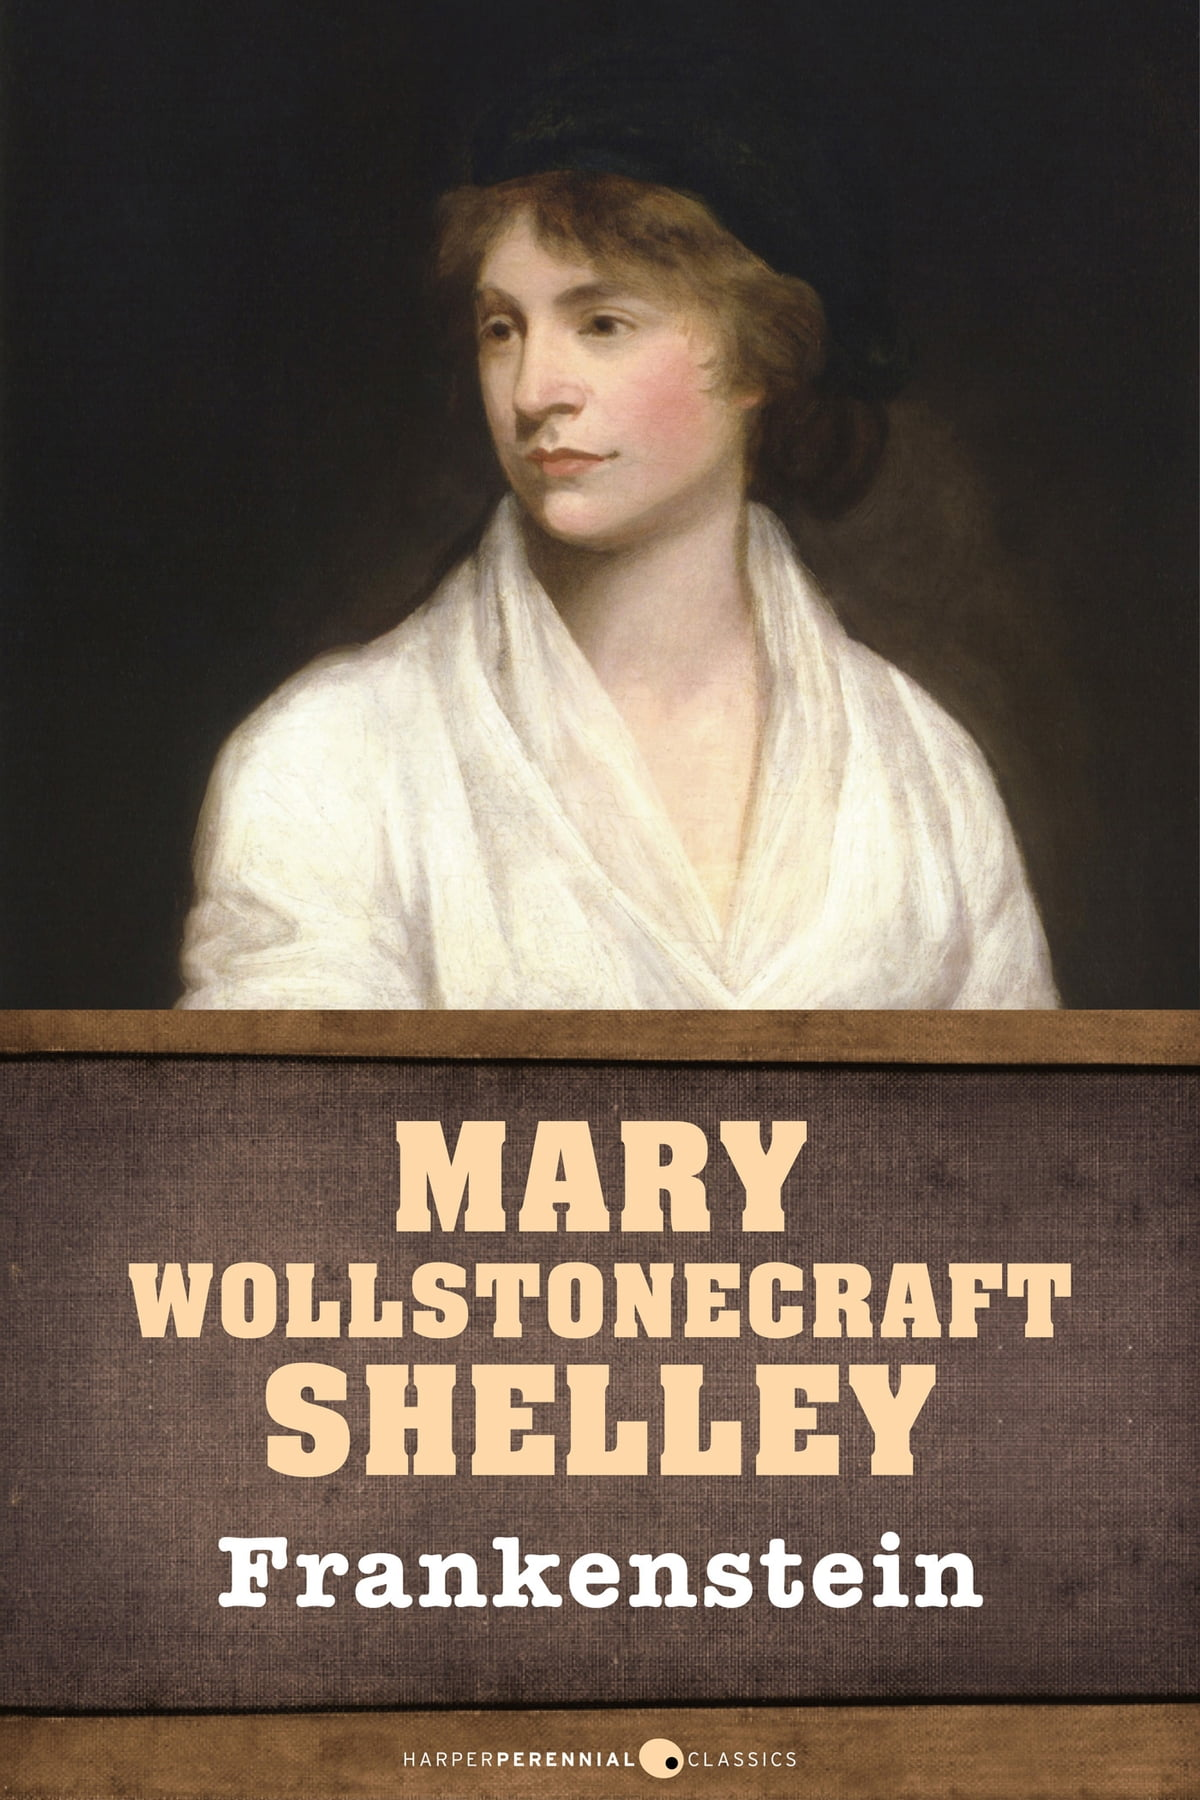 natural philosophy in frankenstein by mary shelley The female gender and its significance in mary shelley's frankenstein april 1, 2017 april 1, 2017 in this essay, wayne tan explores critical issues of gender identity set within a parable of humanity's confrontation and breaching of the limits of nature.